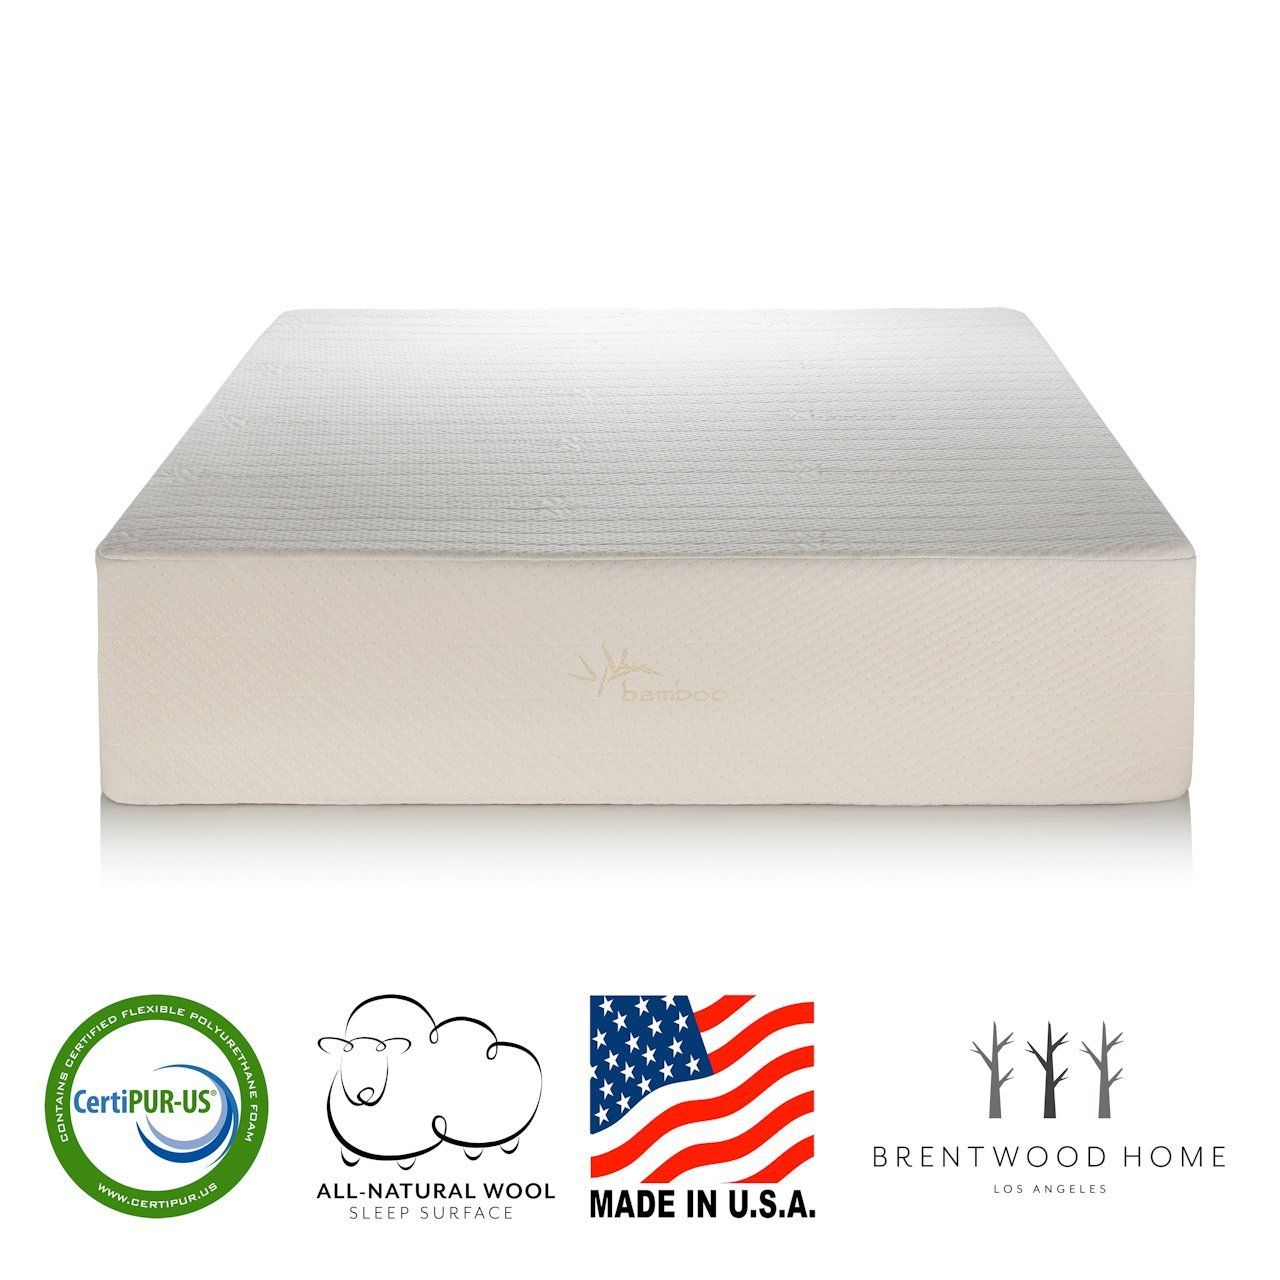 Brentwood Home Bamboo Mattress, Gel Memory Foam, 13-Inch, RV Full